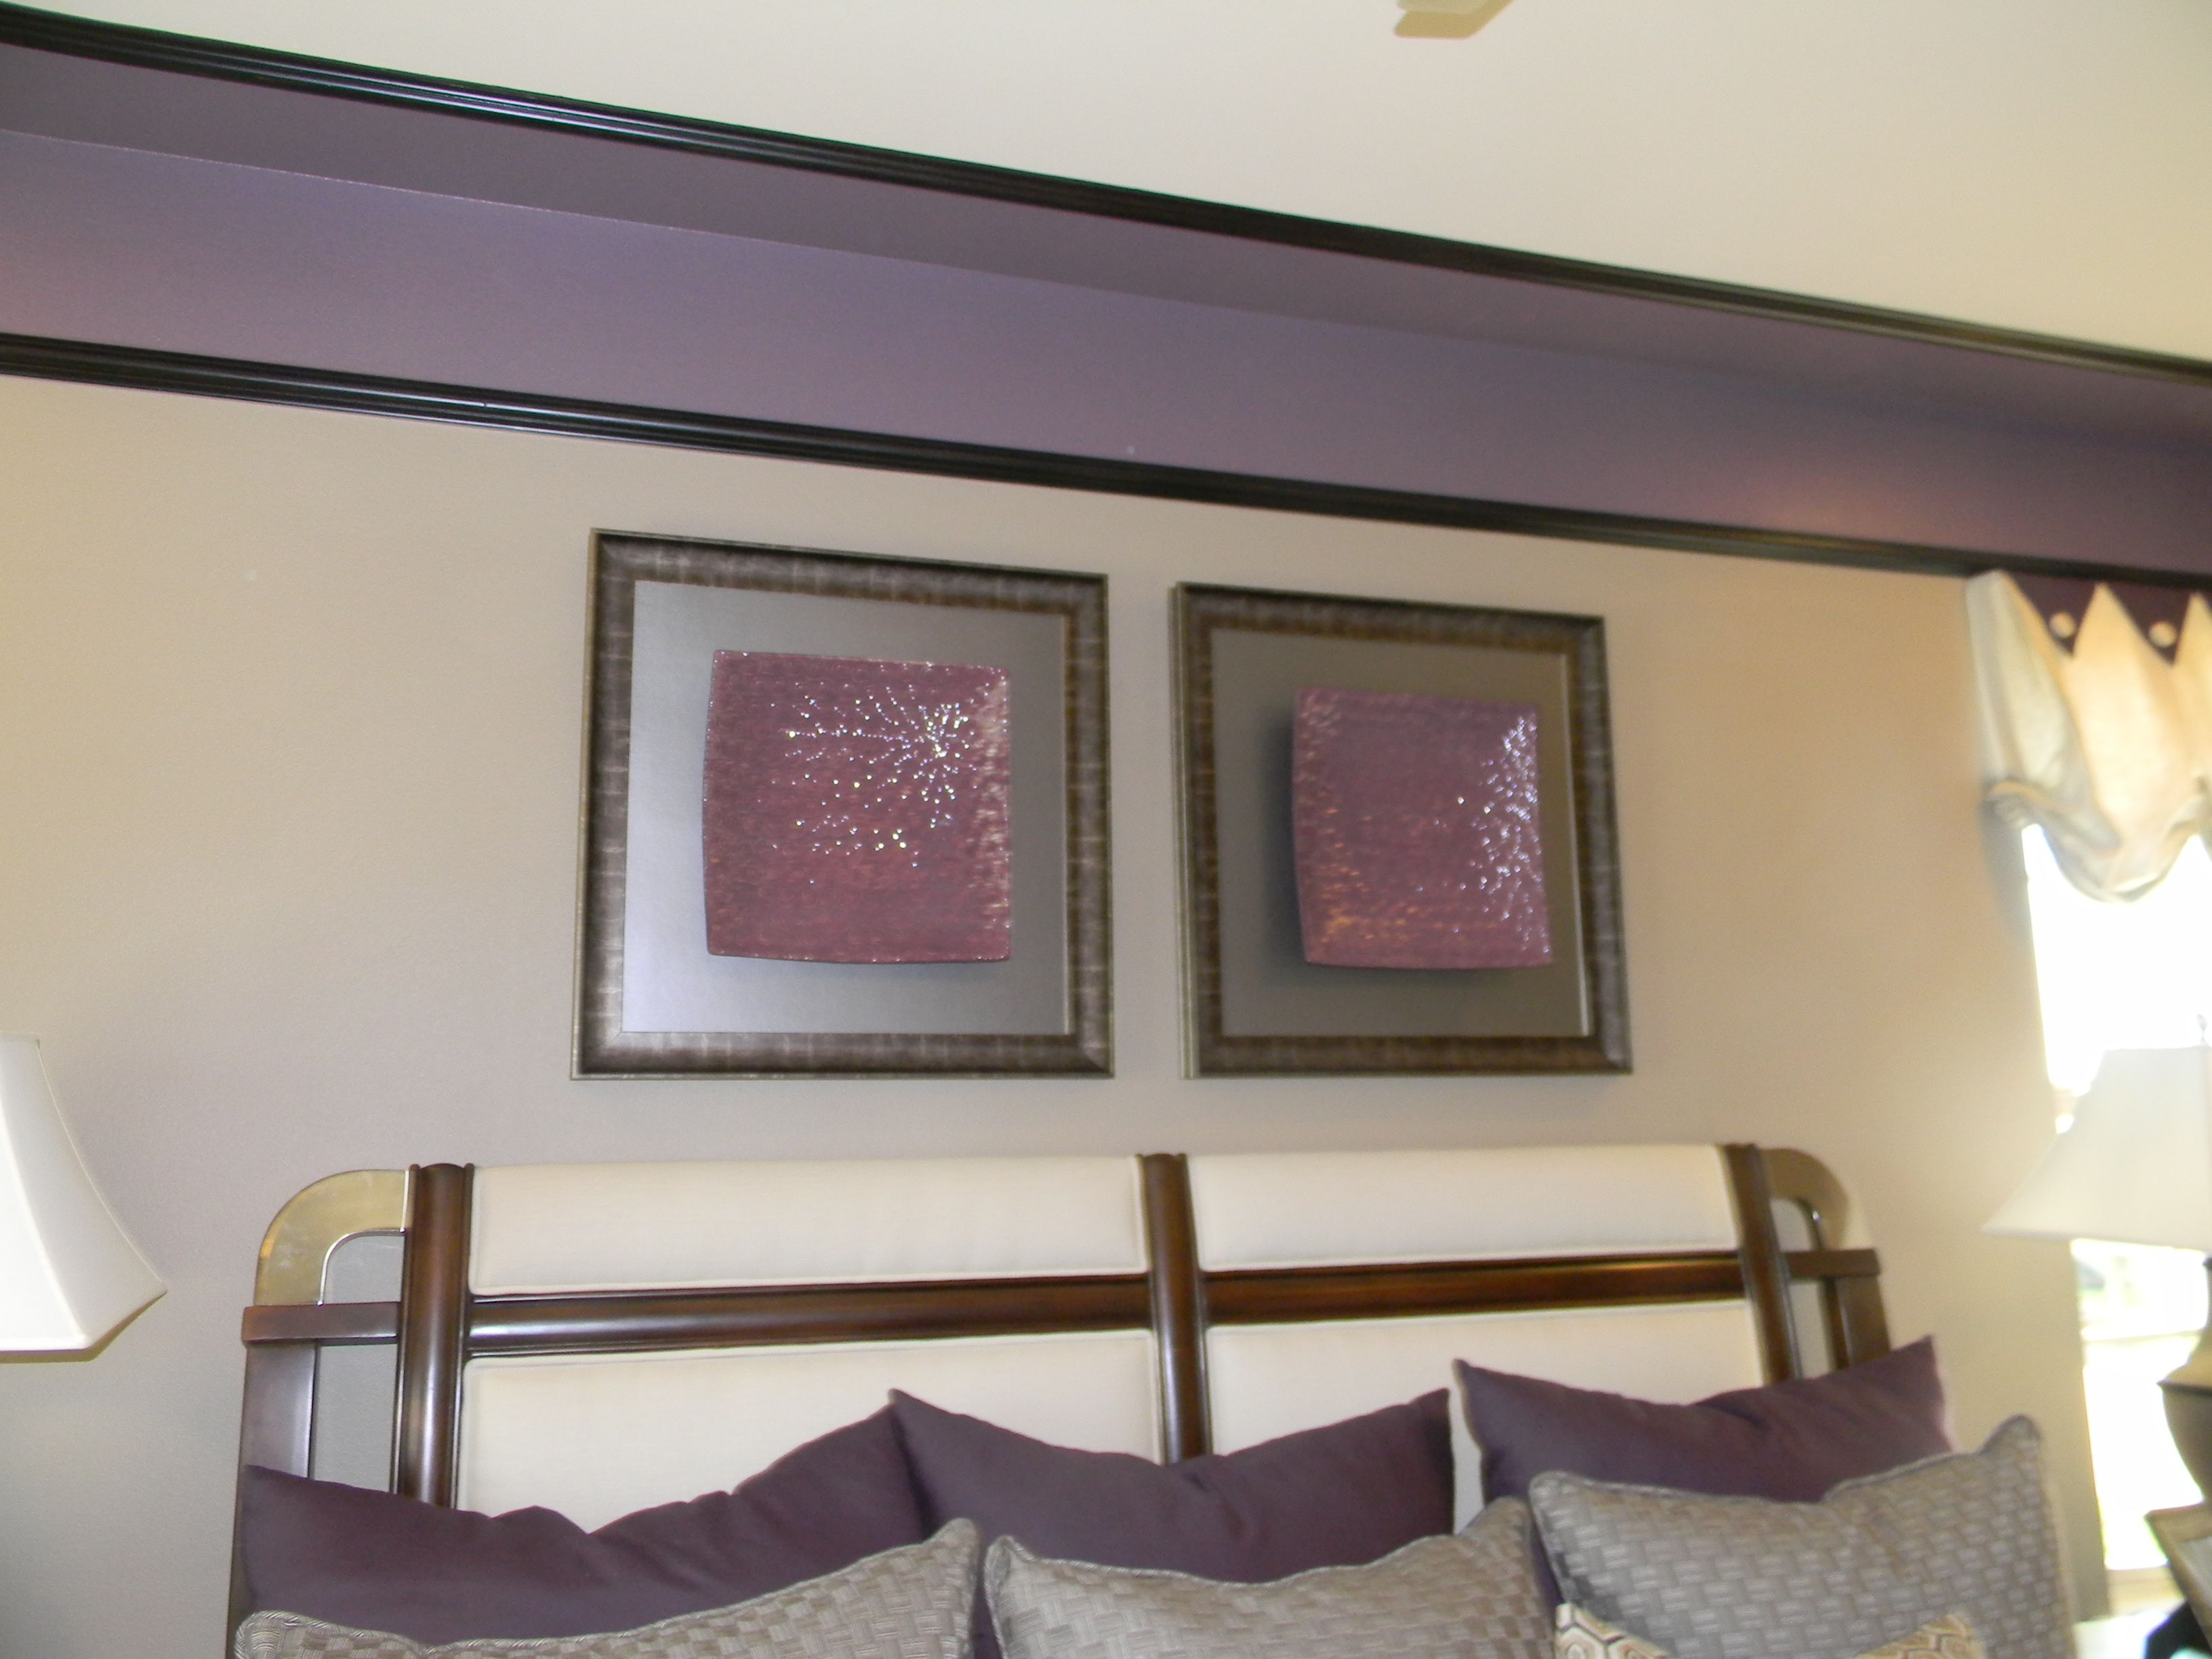 love the molding & darker paint at the top of the walls being carried over onto the ceiling. very interesting!